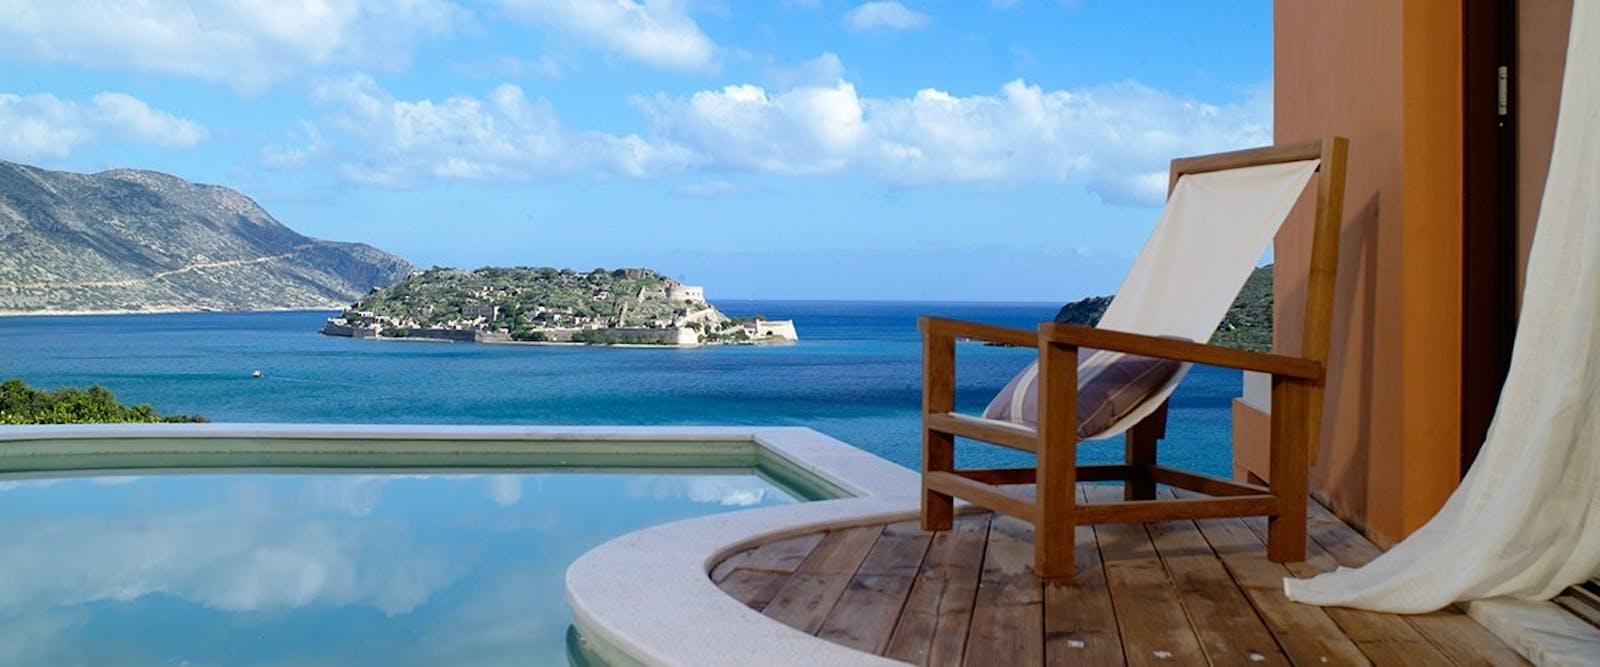 Private Pool with View at Domes of Elounda, Autograph Collection, Crete, Greece